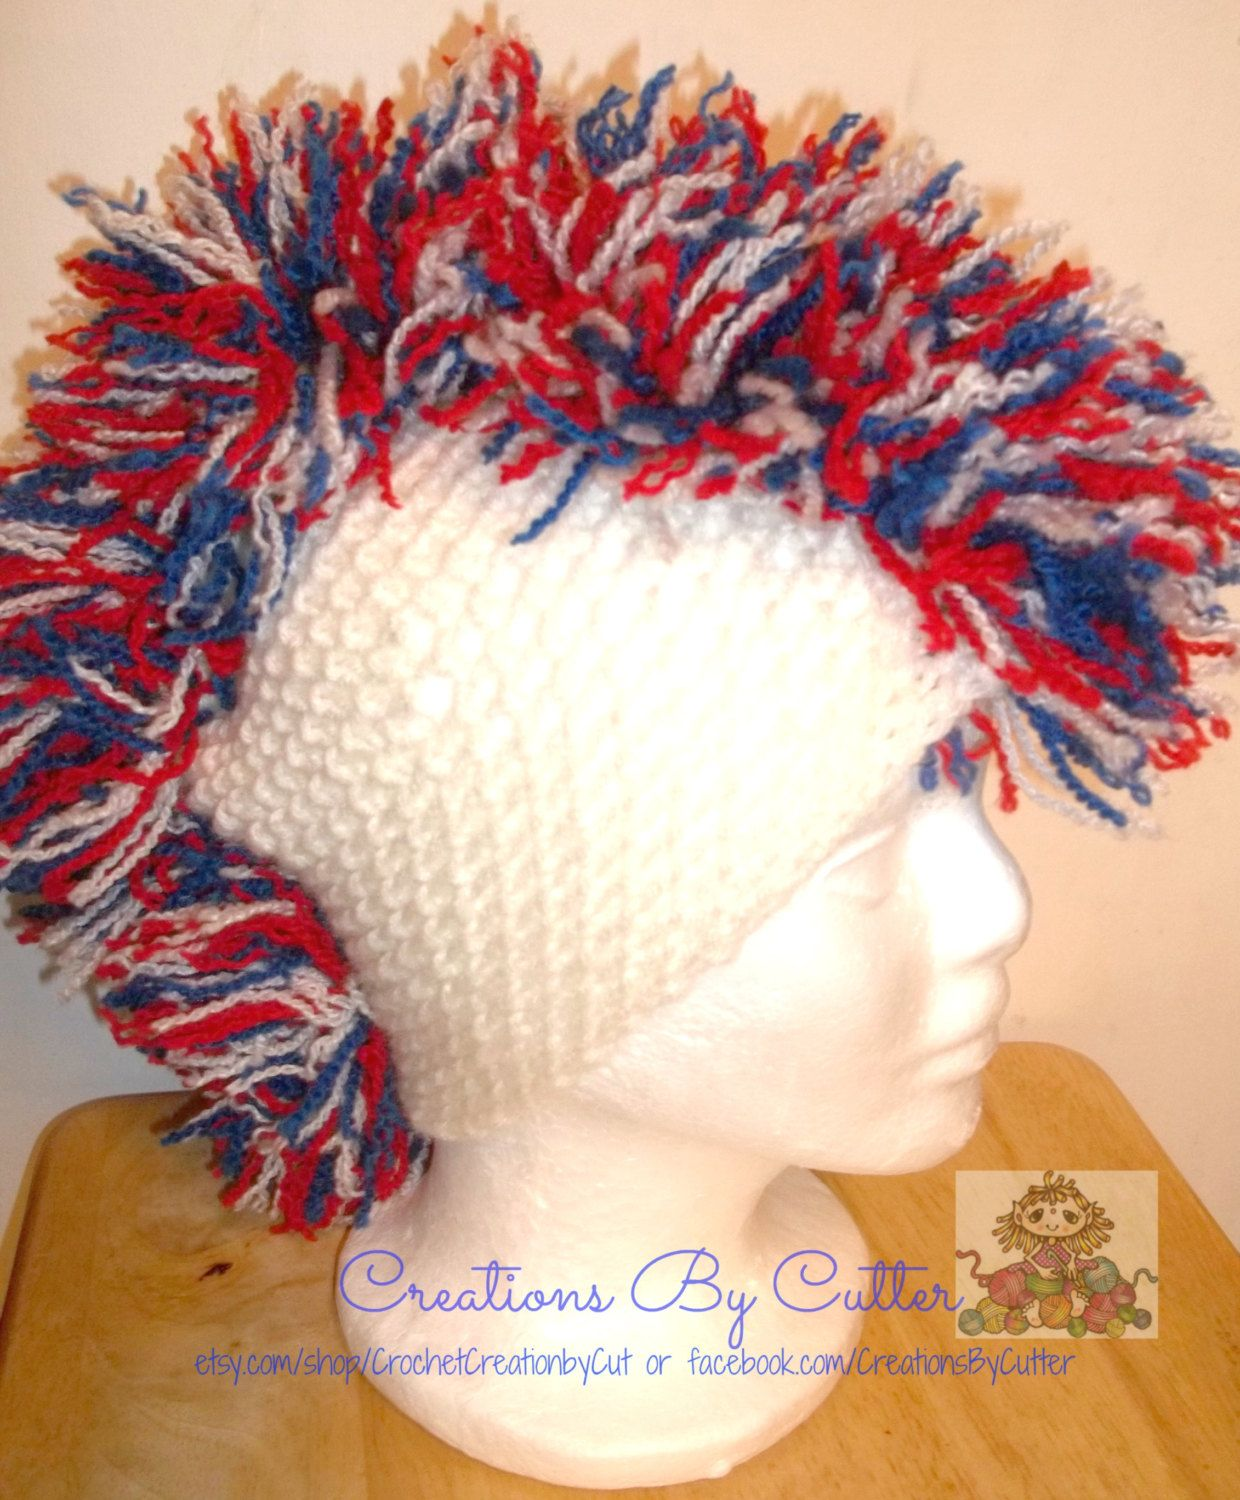 Mohawk Frayed \'Hair\' Beanie Hat, Red, White and Blue Photo Prop ...